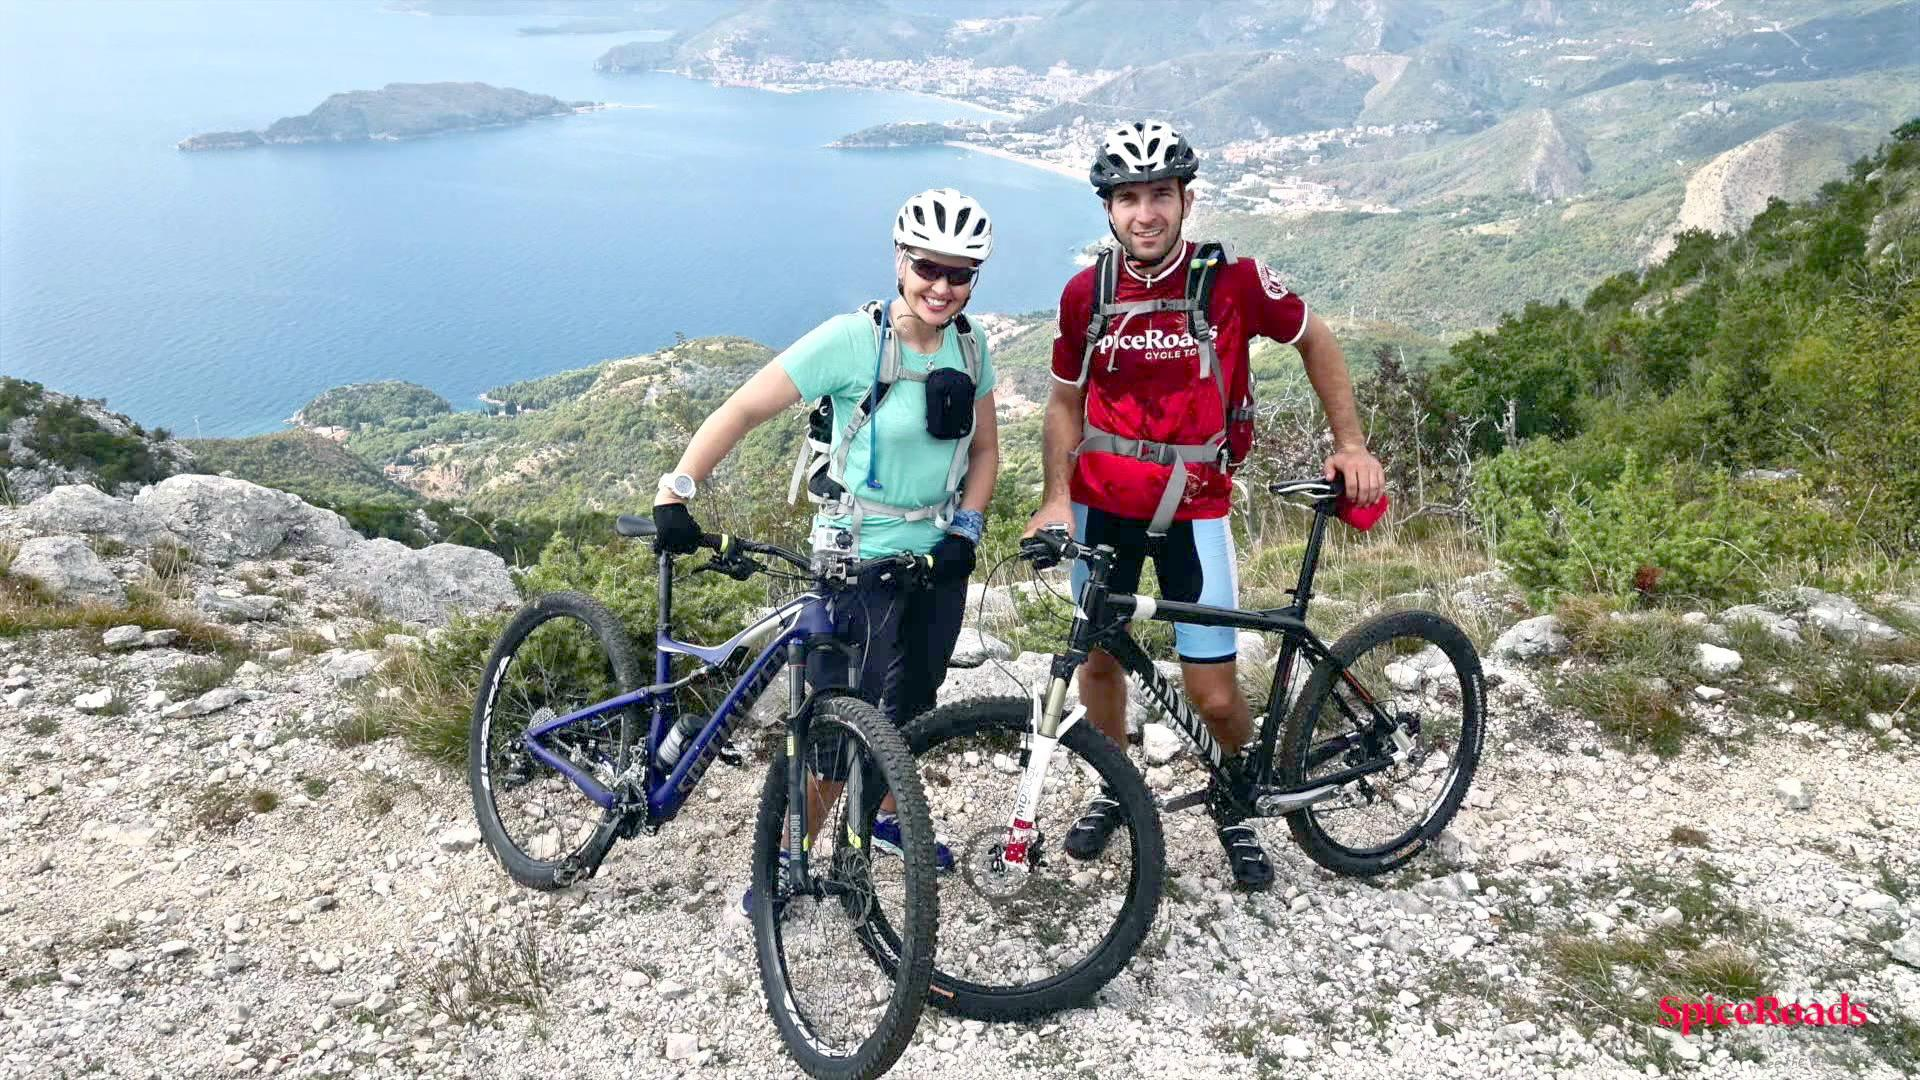 Mountain biking through Wild Beauty Montenegro